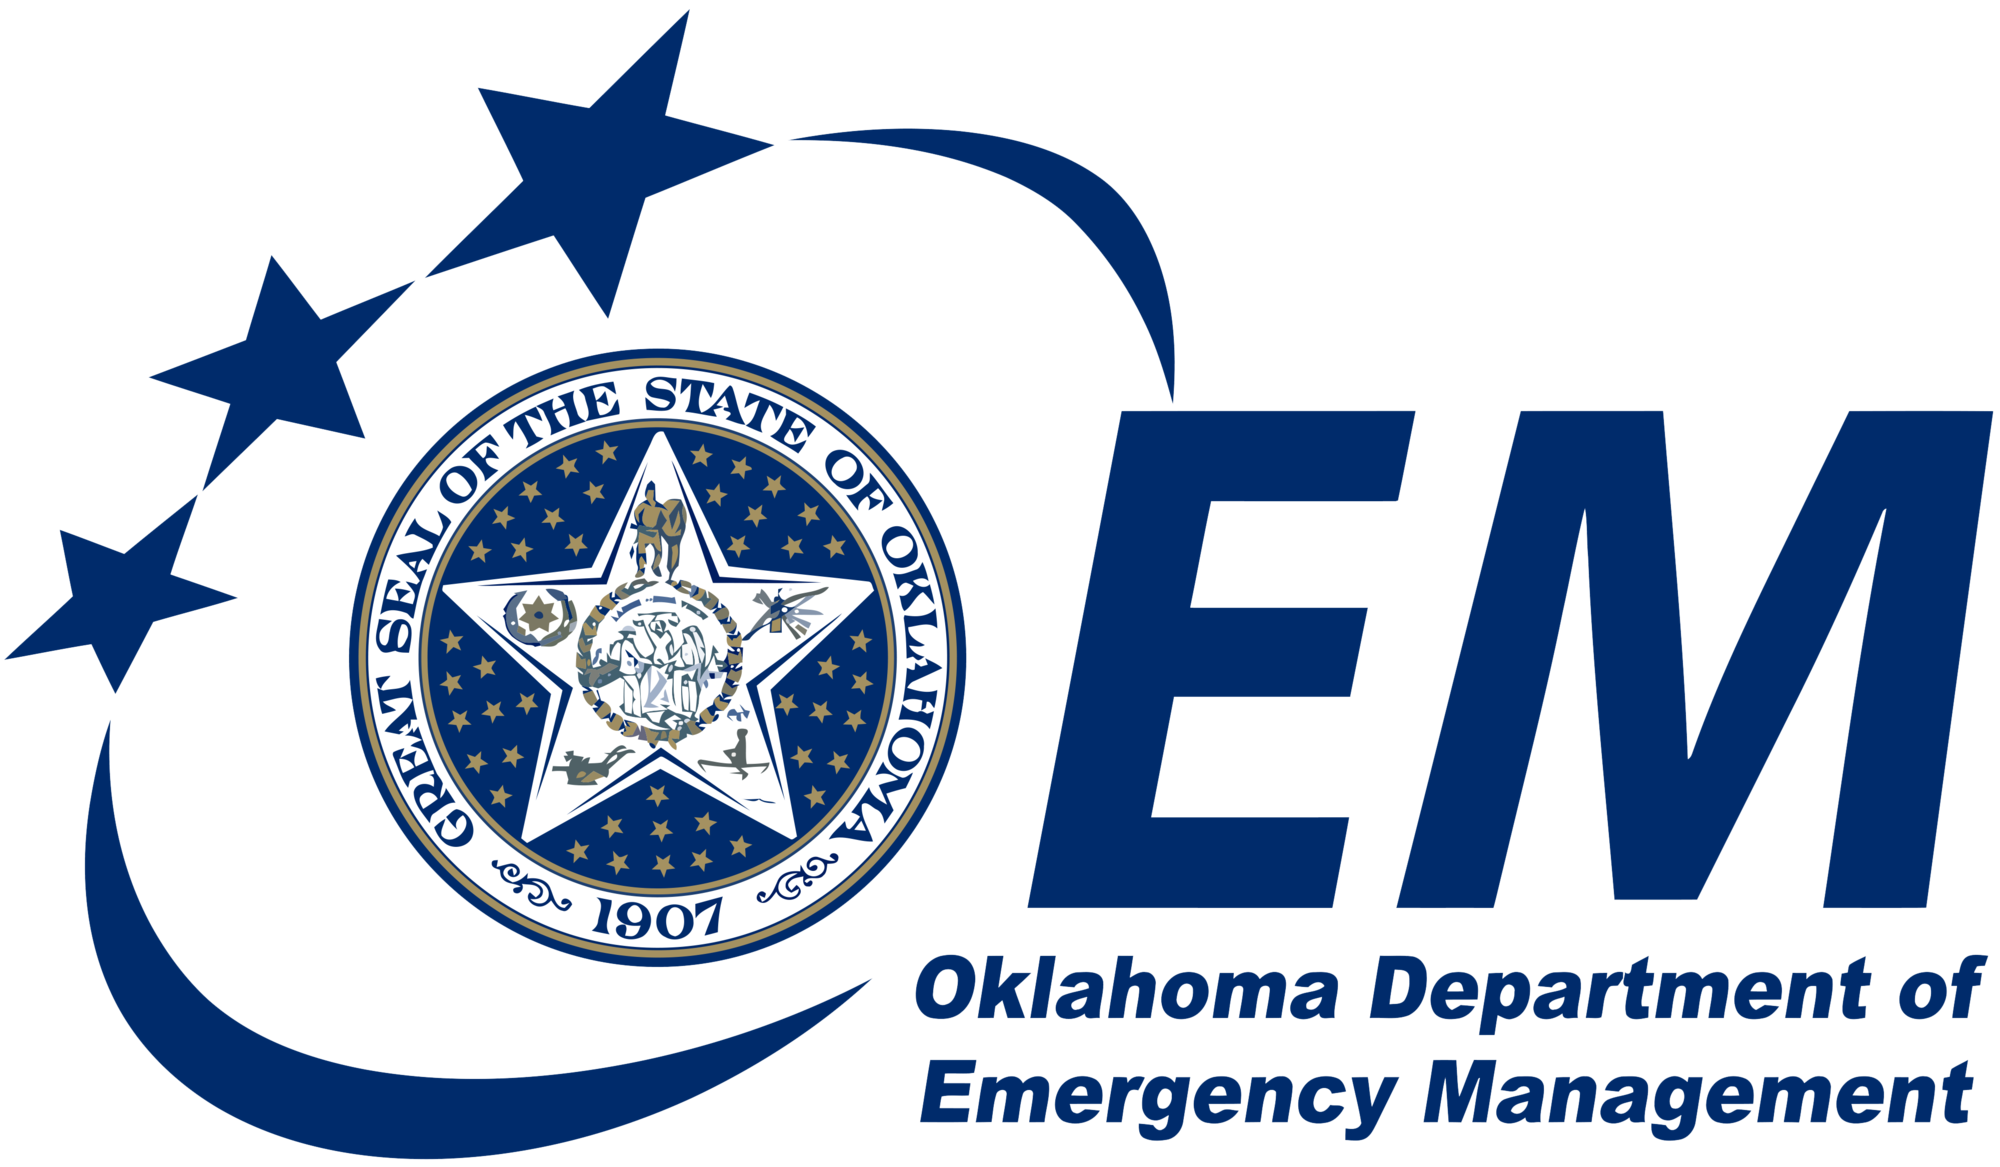 Oklahoma Department of Emergency Management - Home